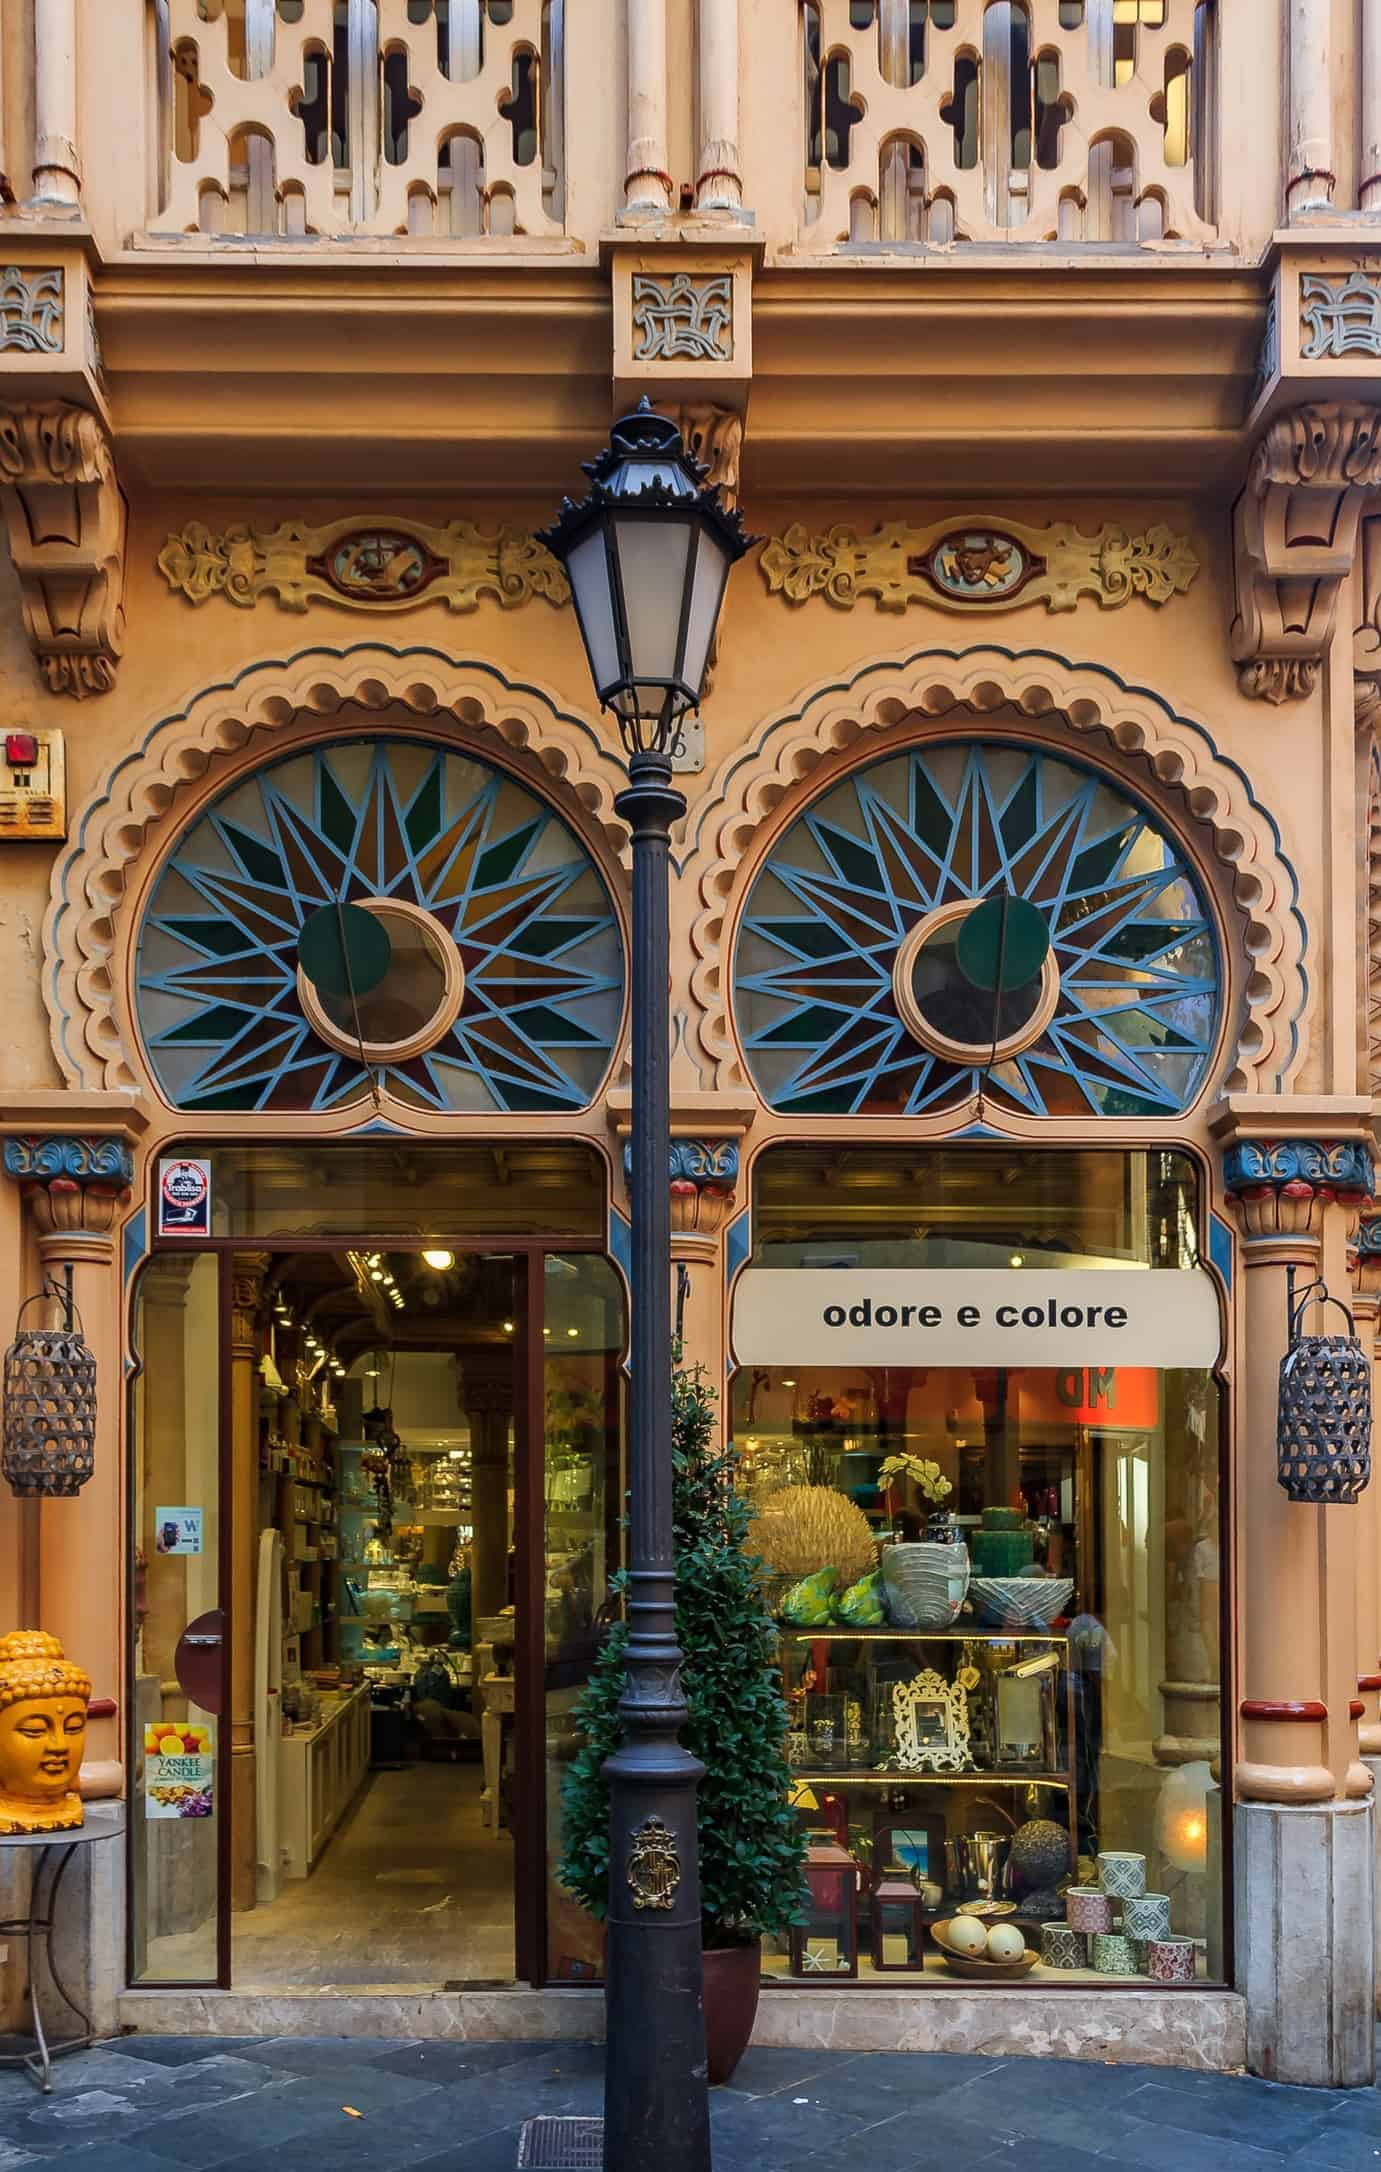 Colorful facade of a building with an Antoni Gaudi inspired architecture design in Palma de Mallorca in Mallorca on Balearic islands in Spain